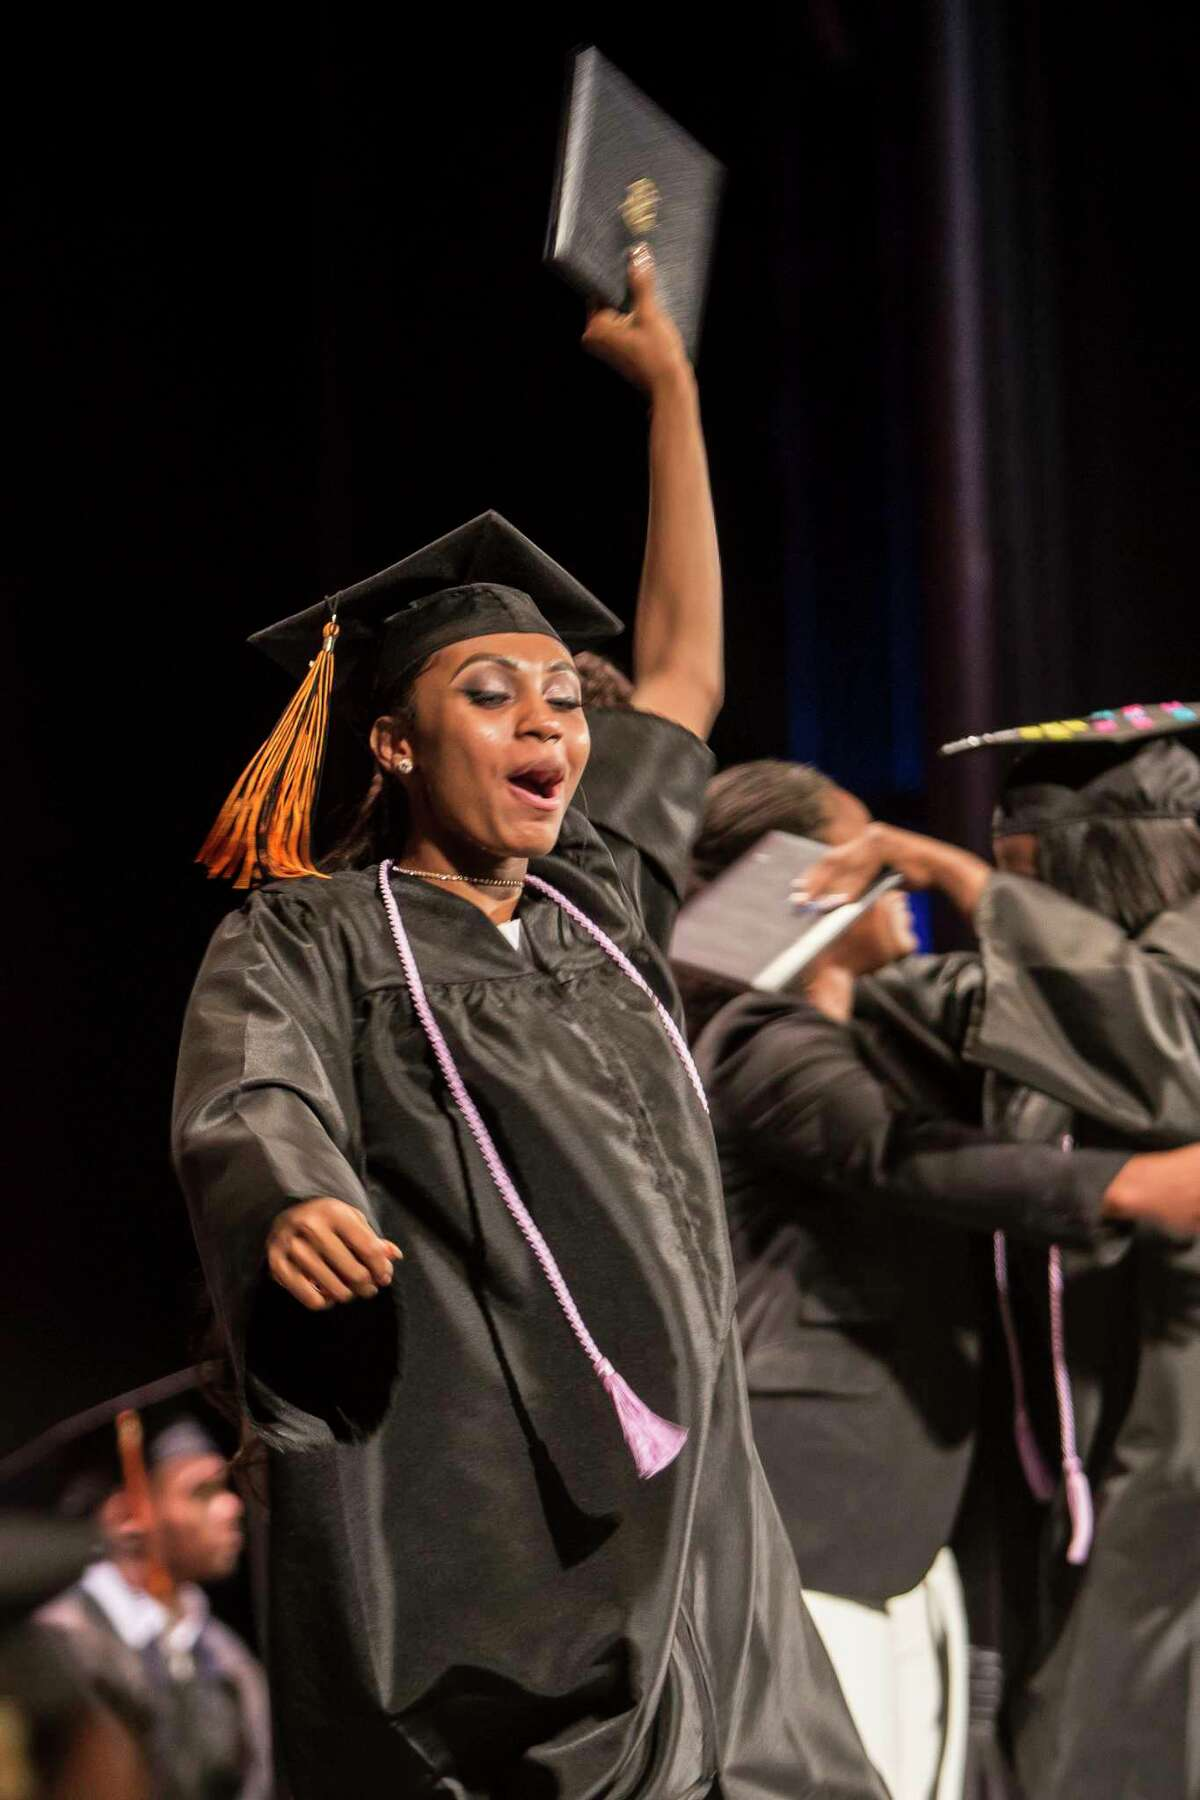 Lamonie Baldwin raises her diploma high after it was handed to her on stage at The Bullard-Havens Technical High School commencement ceremony. Klein Memorial Auditorium hosted the event in Bridgeport, Conn. on Wednesday, June 14, 2017.